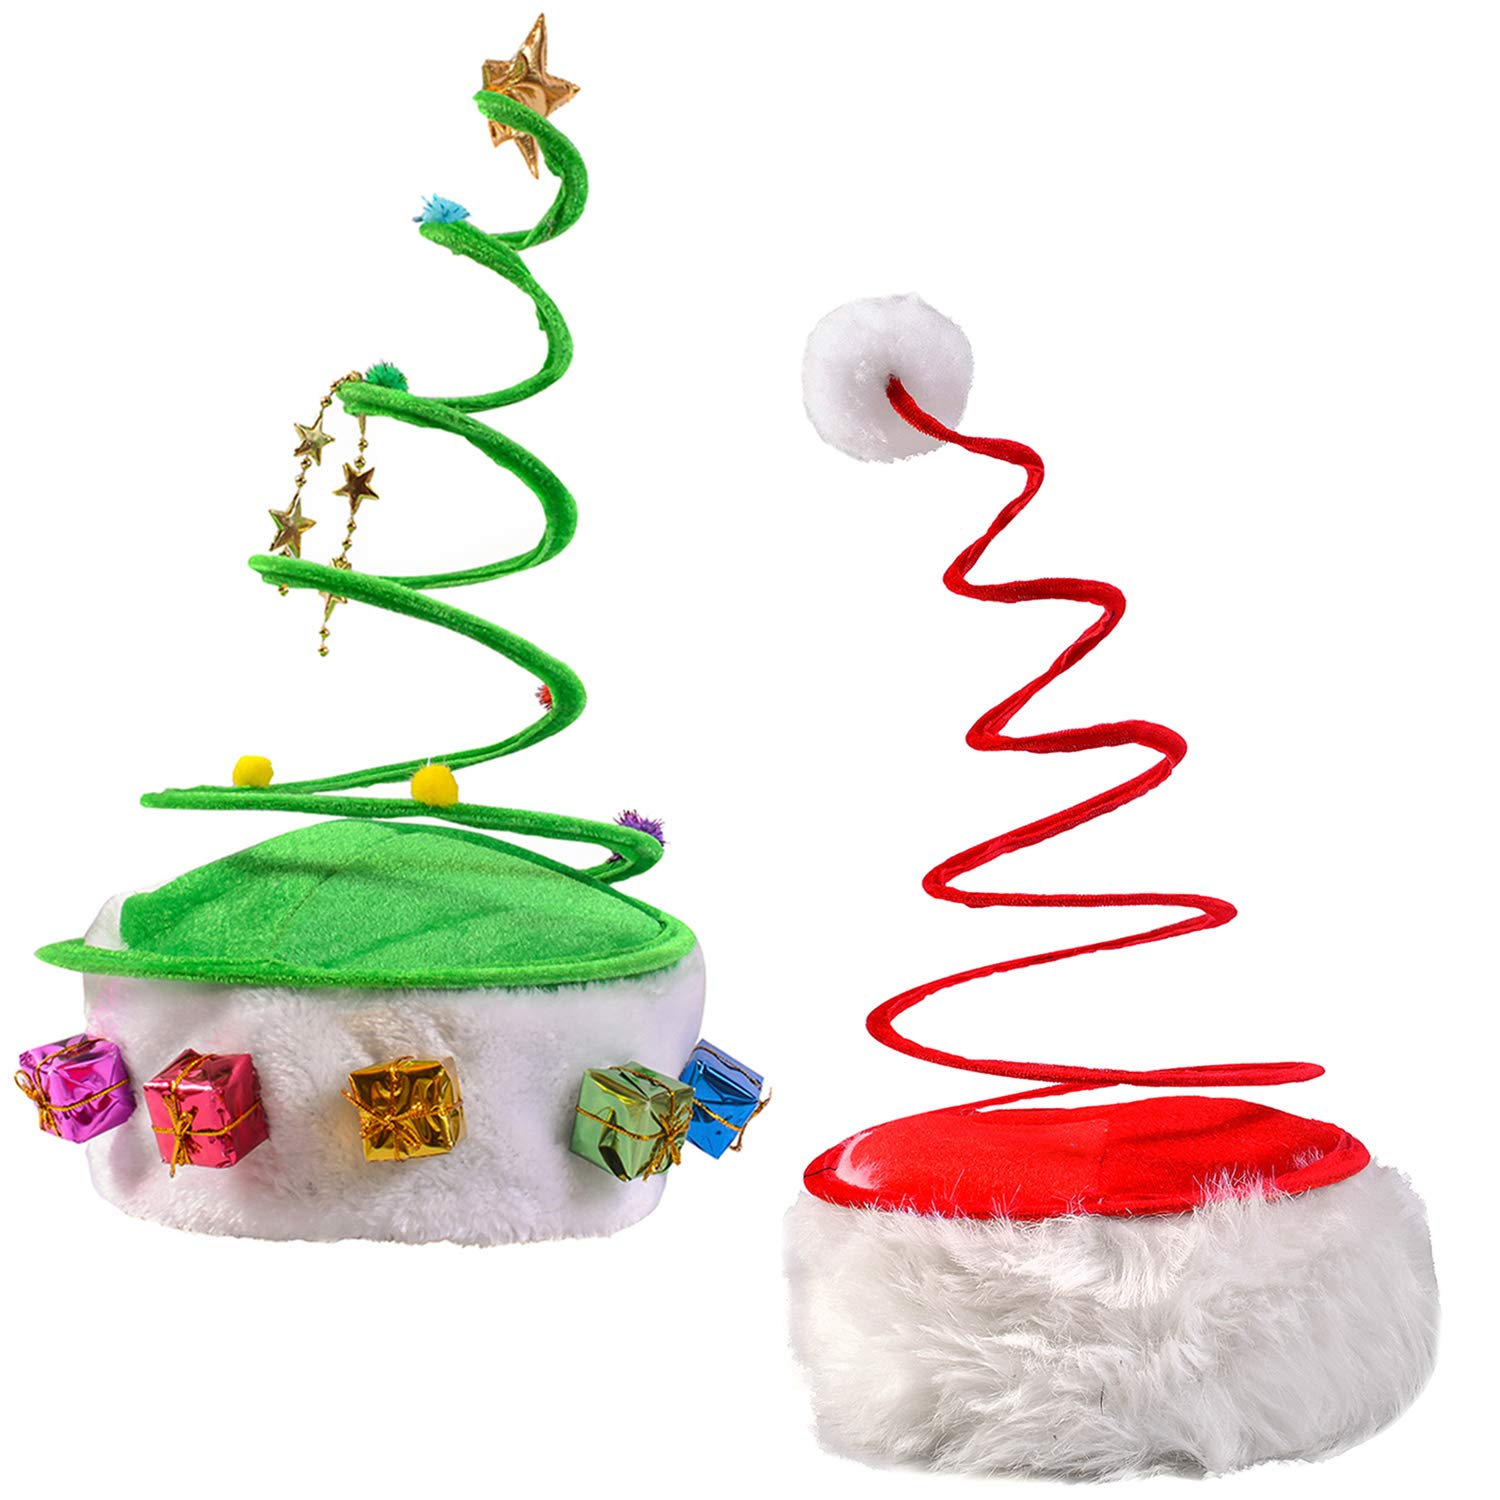 Funny Party Hats Christmas Hats - Red Coil Santa Hat - Green Coil Christmas Tree Hat - Springy Christmas Hat - (2 Pack) by Funny Party Hats